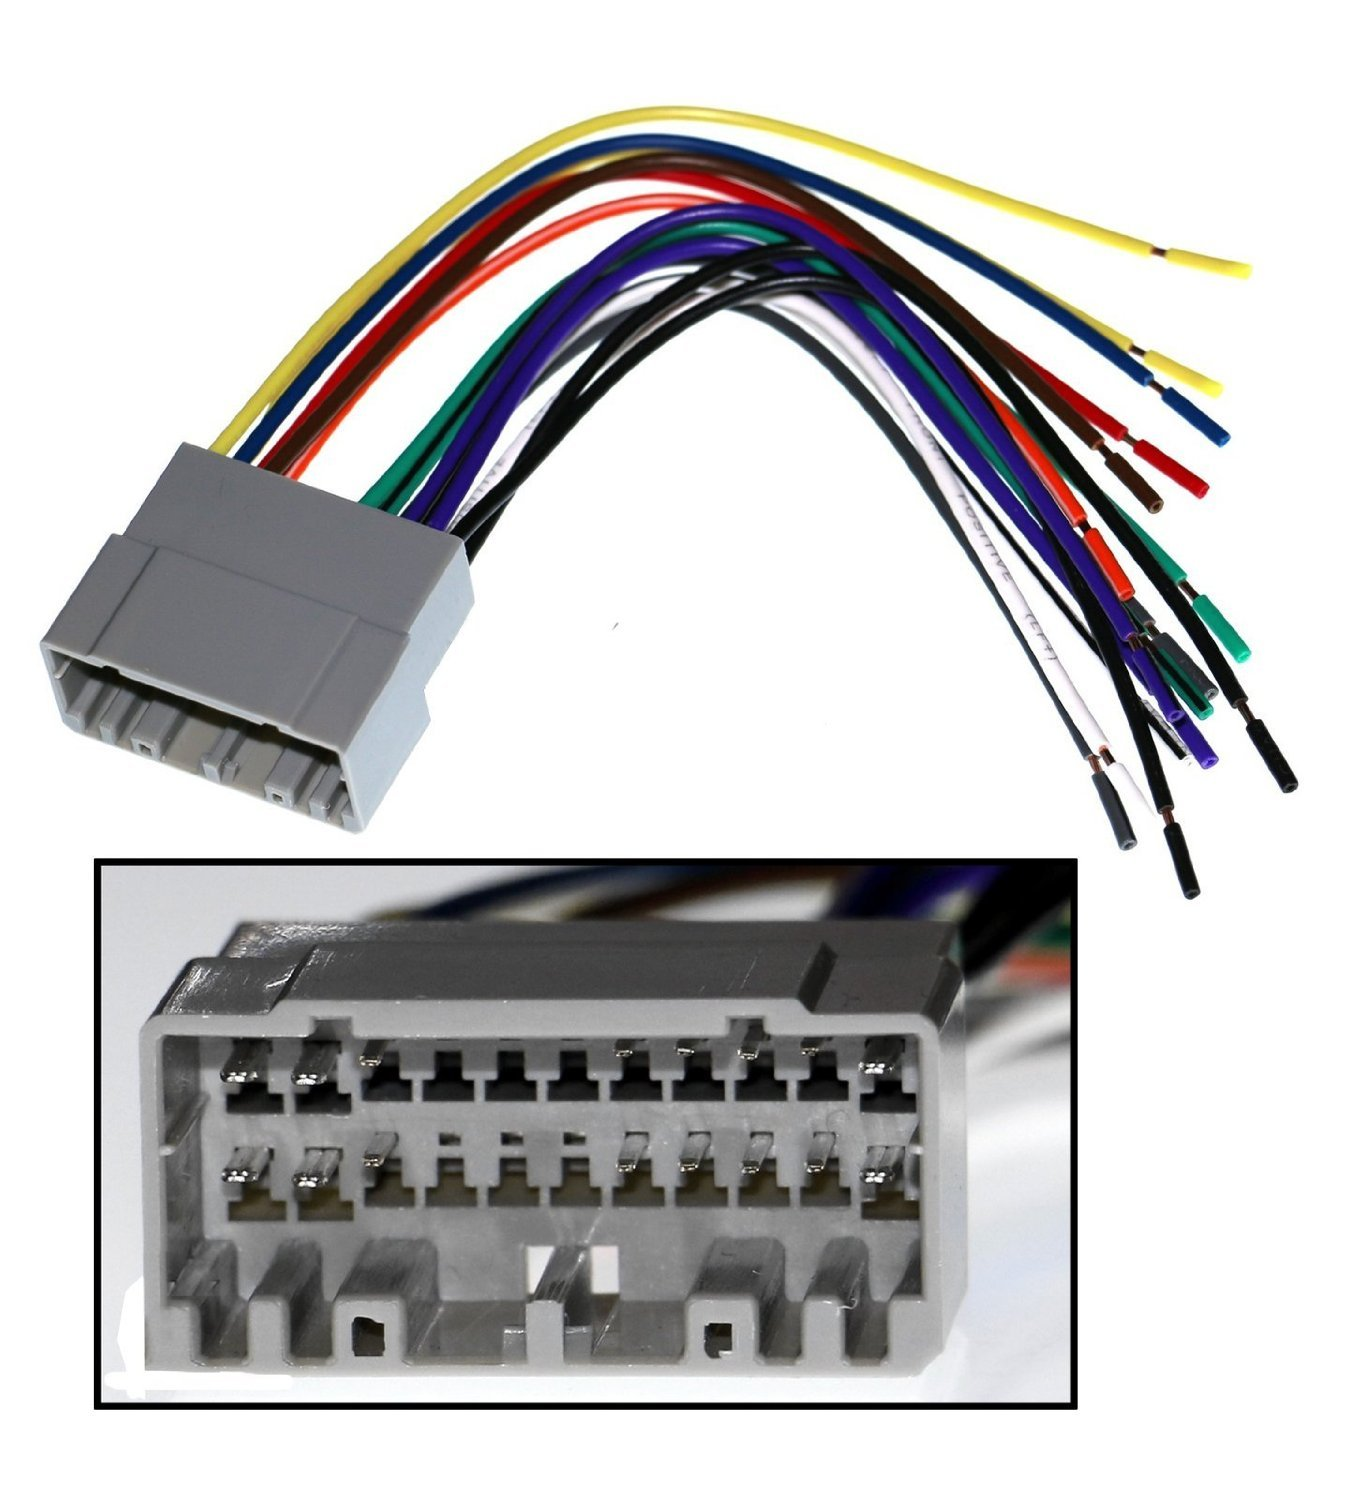 710Q%2BKgavVL._SL1500_ amazon com pioneer car stereo reciever dash install mounting stereo wiring harness for 2004 impala at readyjetset.co